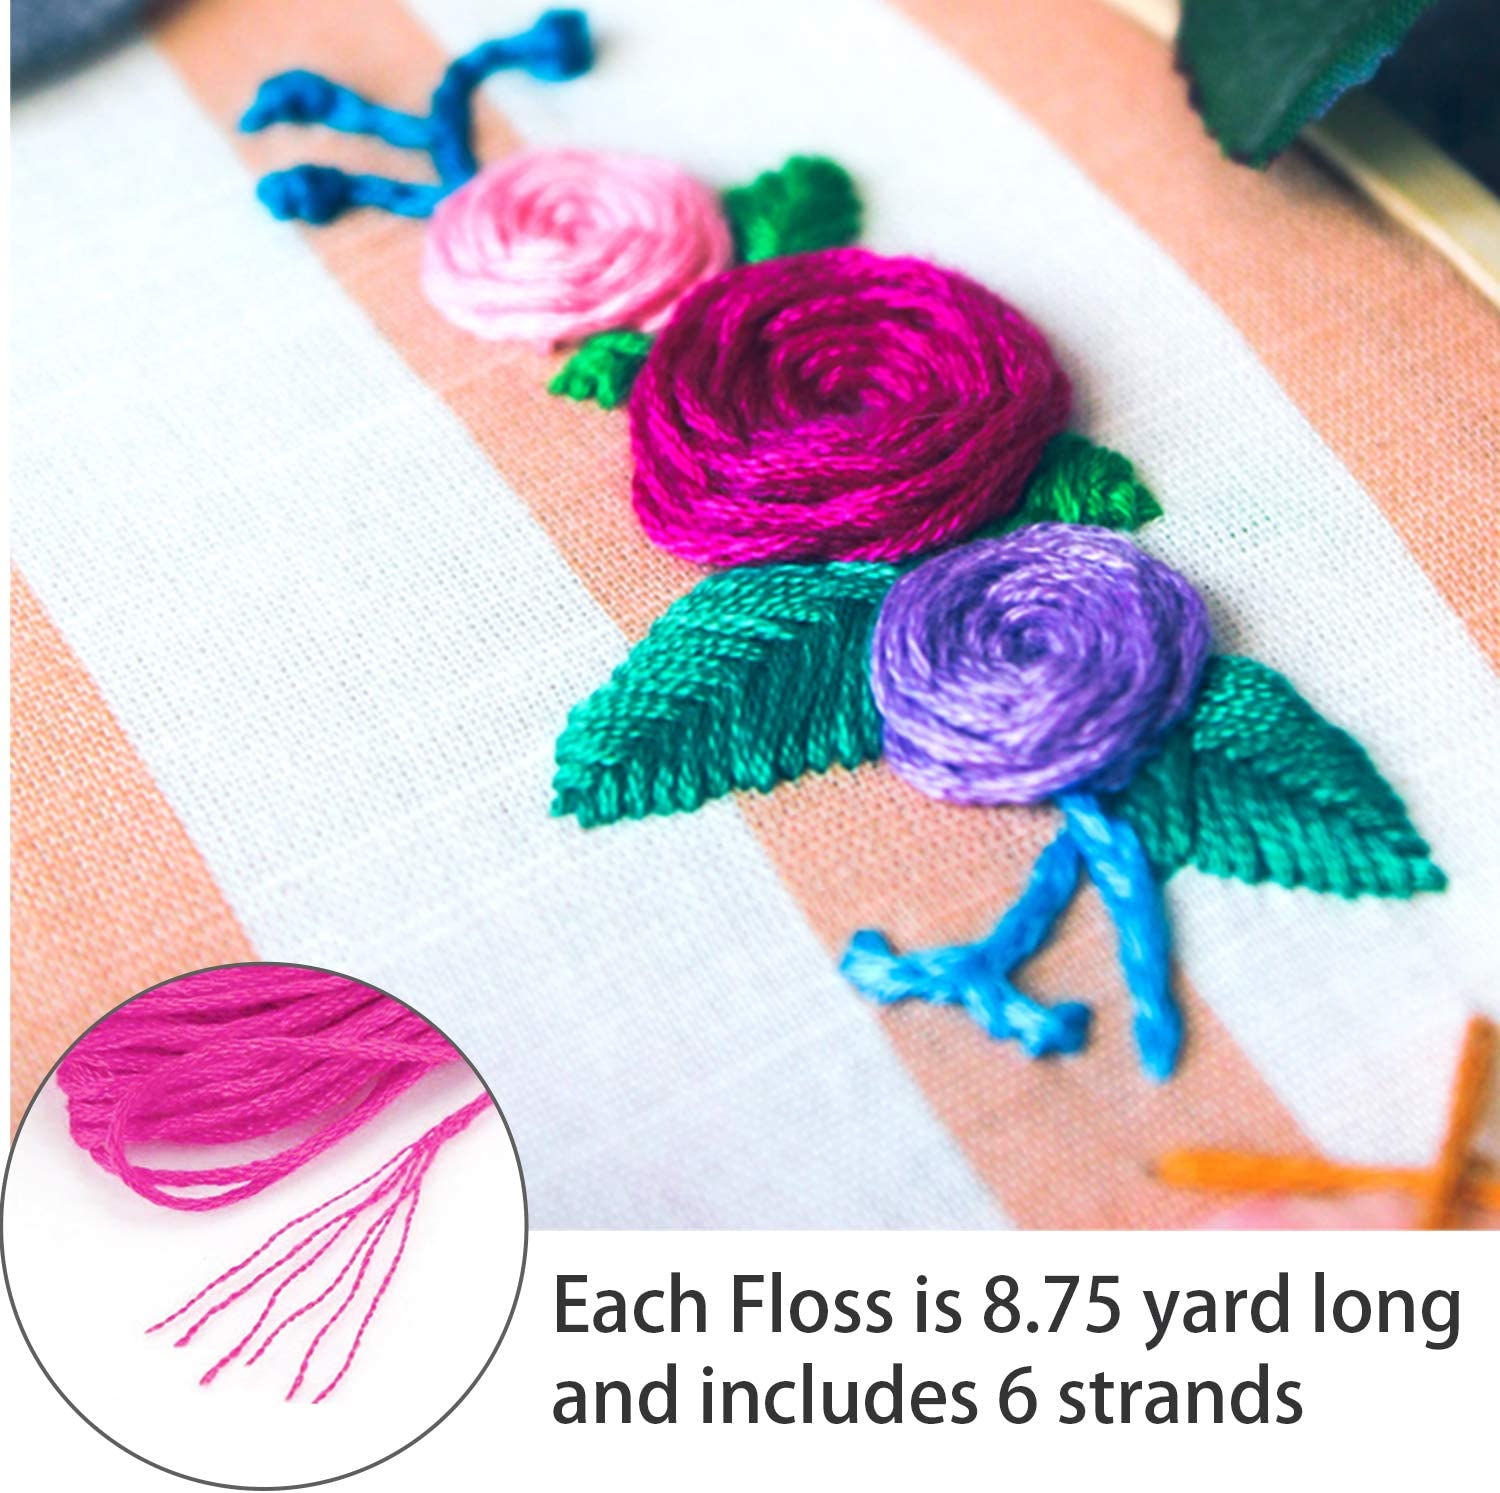 Embroidery Floss Rainbow Color 108 Skeins Per Pack with Cotton Cross Stitch Threads Friendship Bracelets Floss Crafts Floss Set AROIC Craft Floss